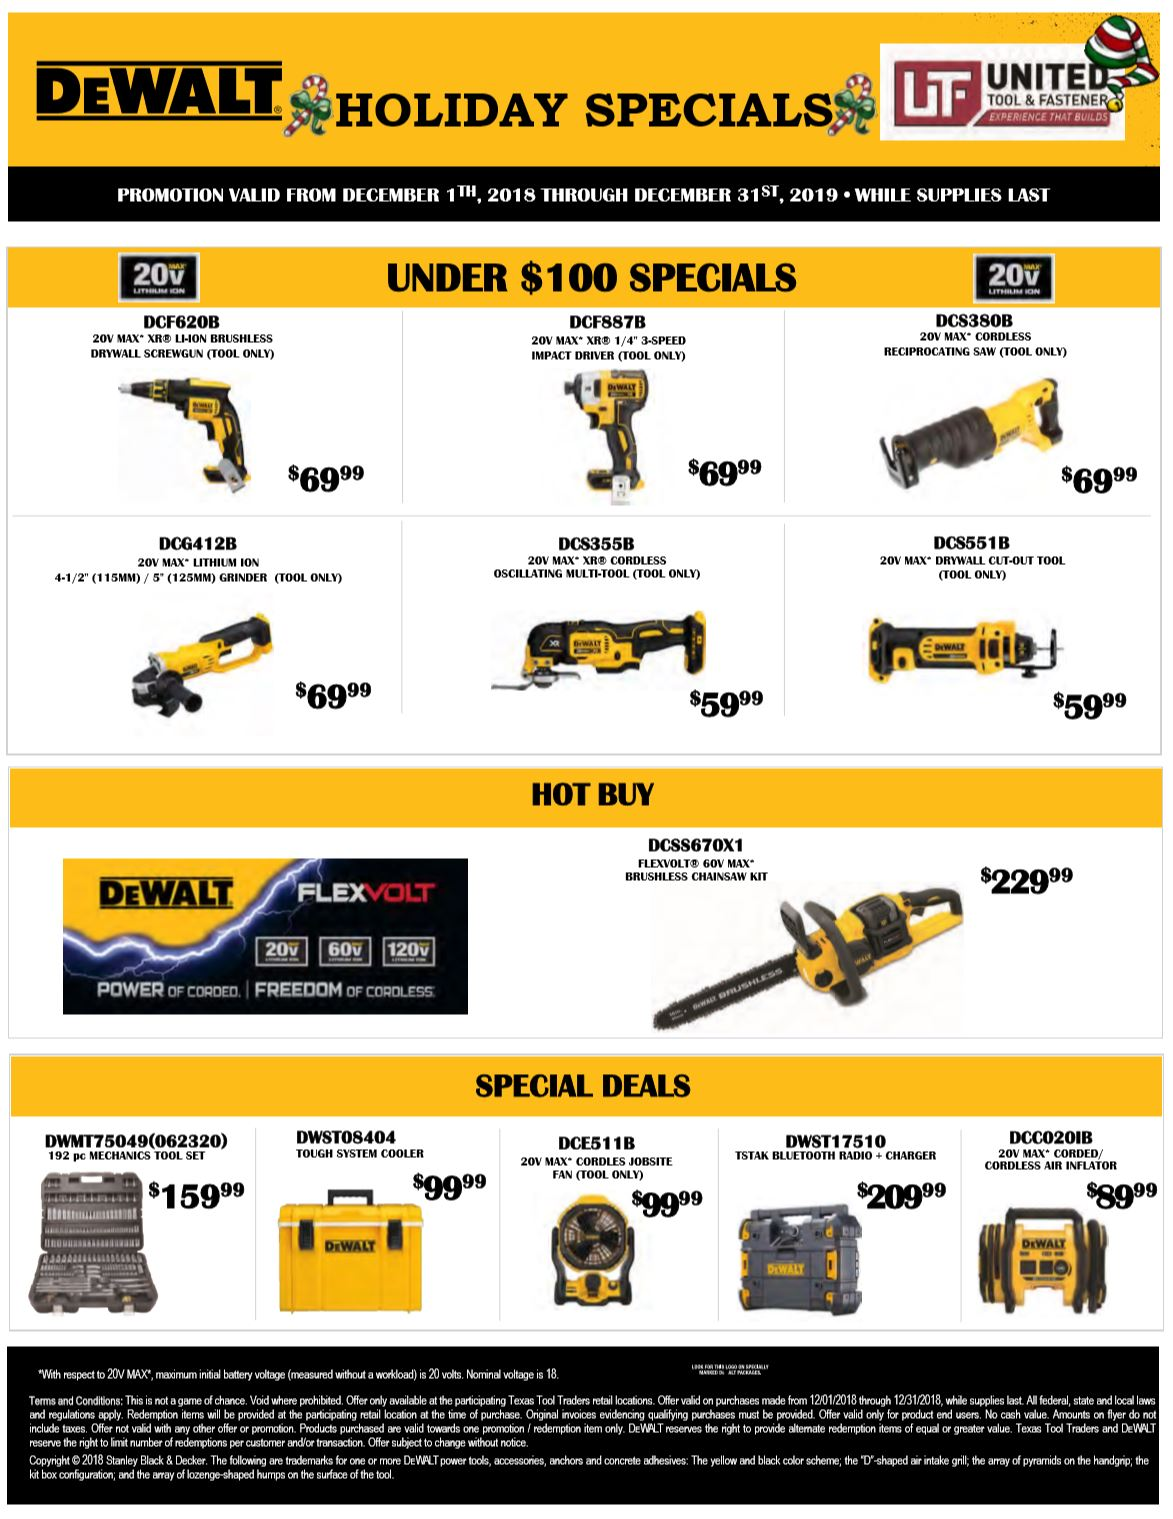 DeWalt 2018 Holiday Specials